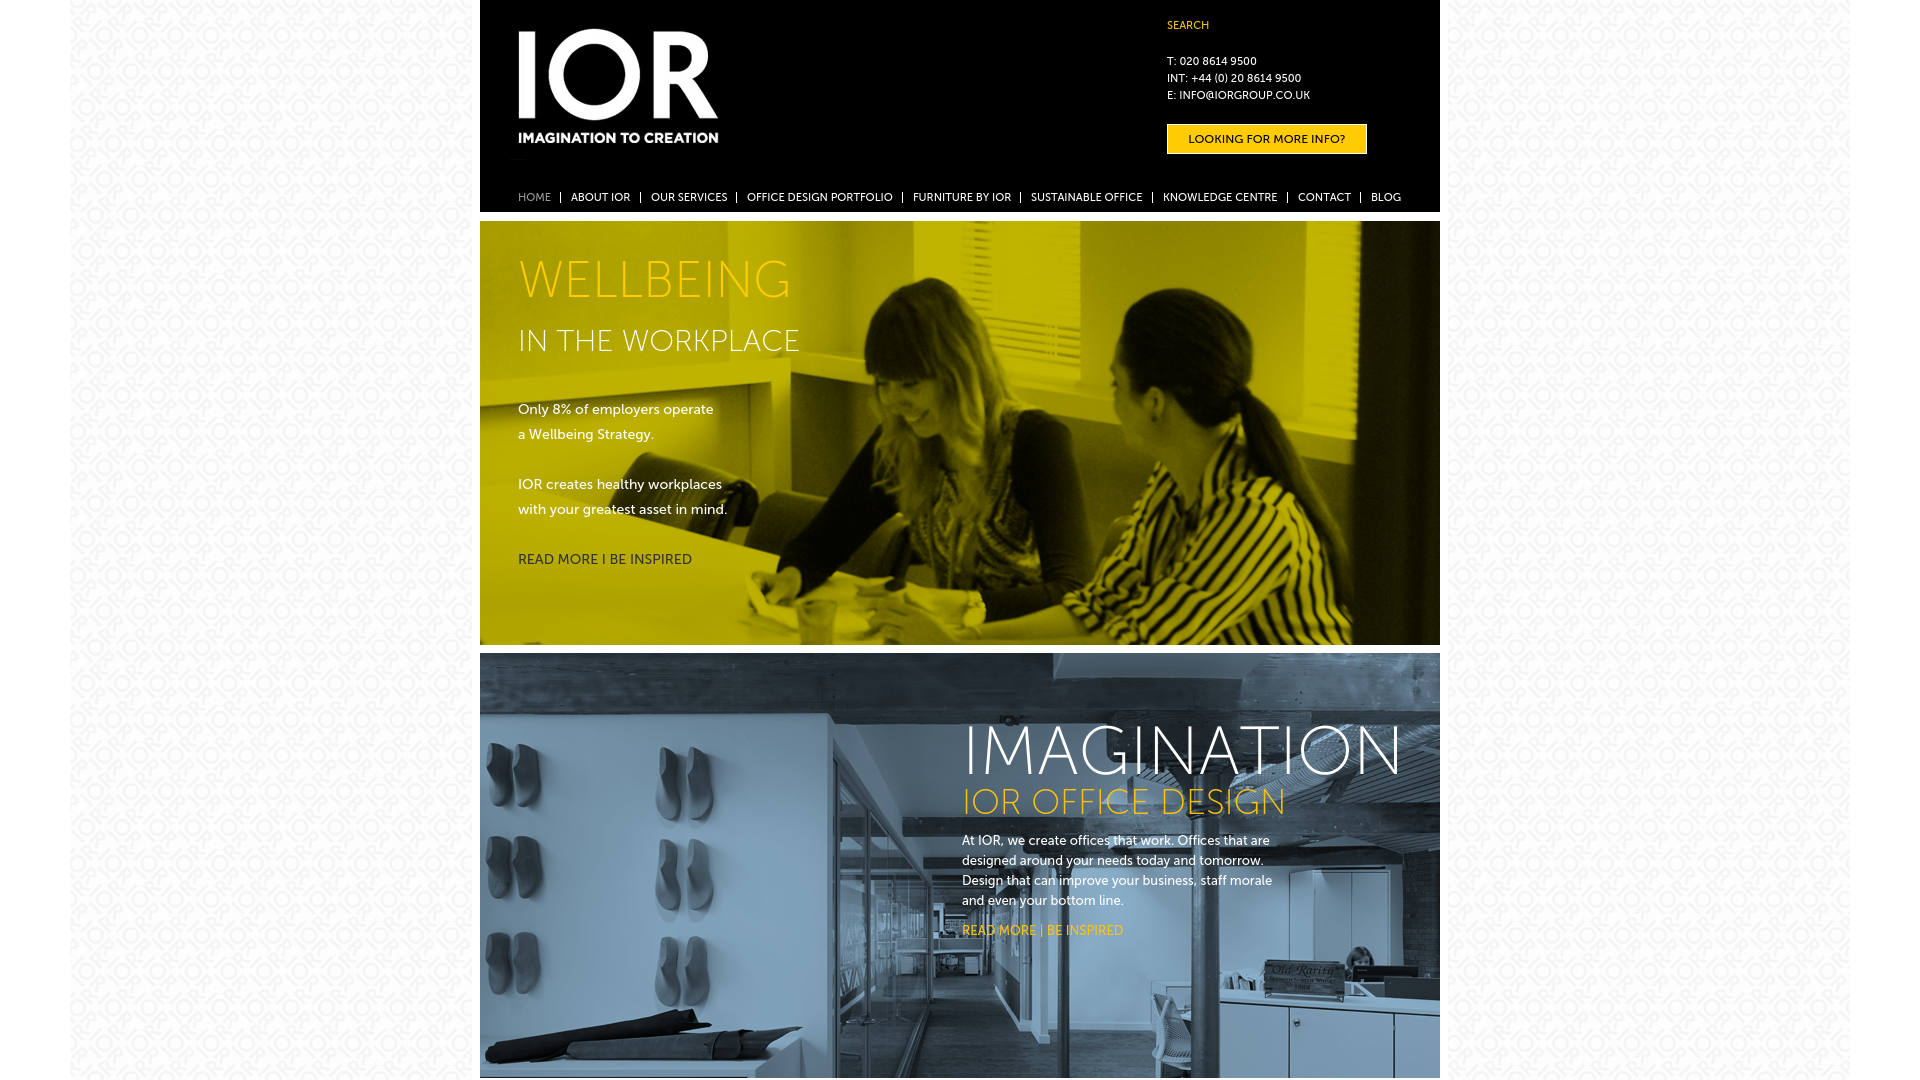 ior company profile office locations jobs key people